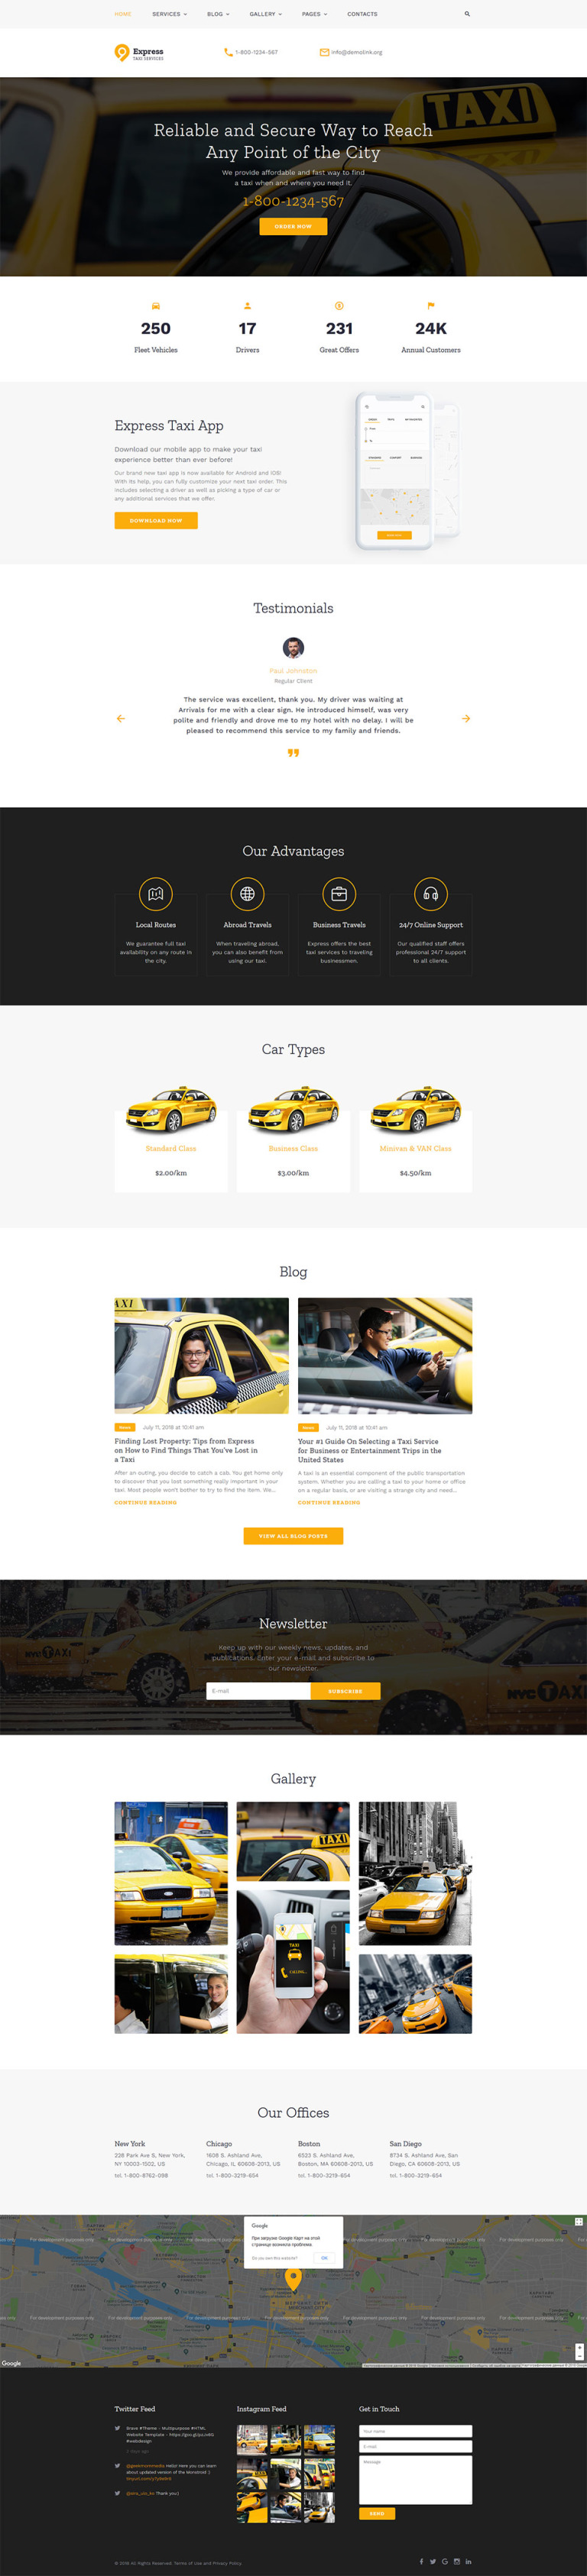 Taxi Vip Website Template New Screenshots BIG